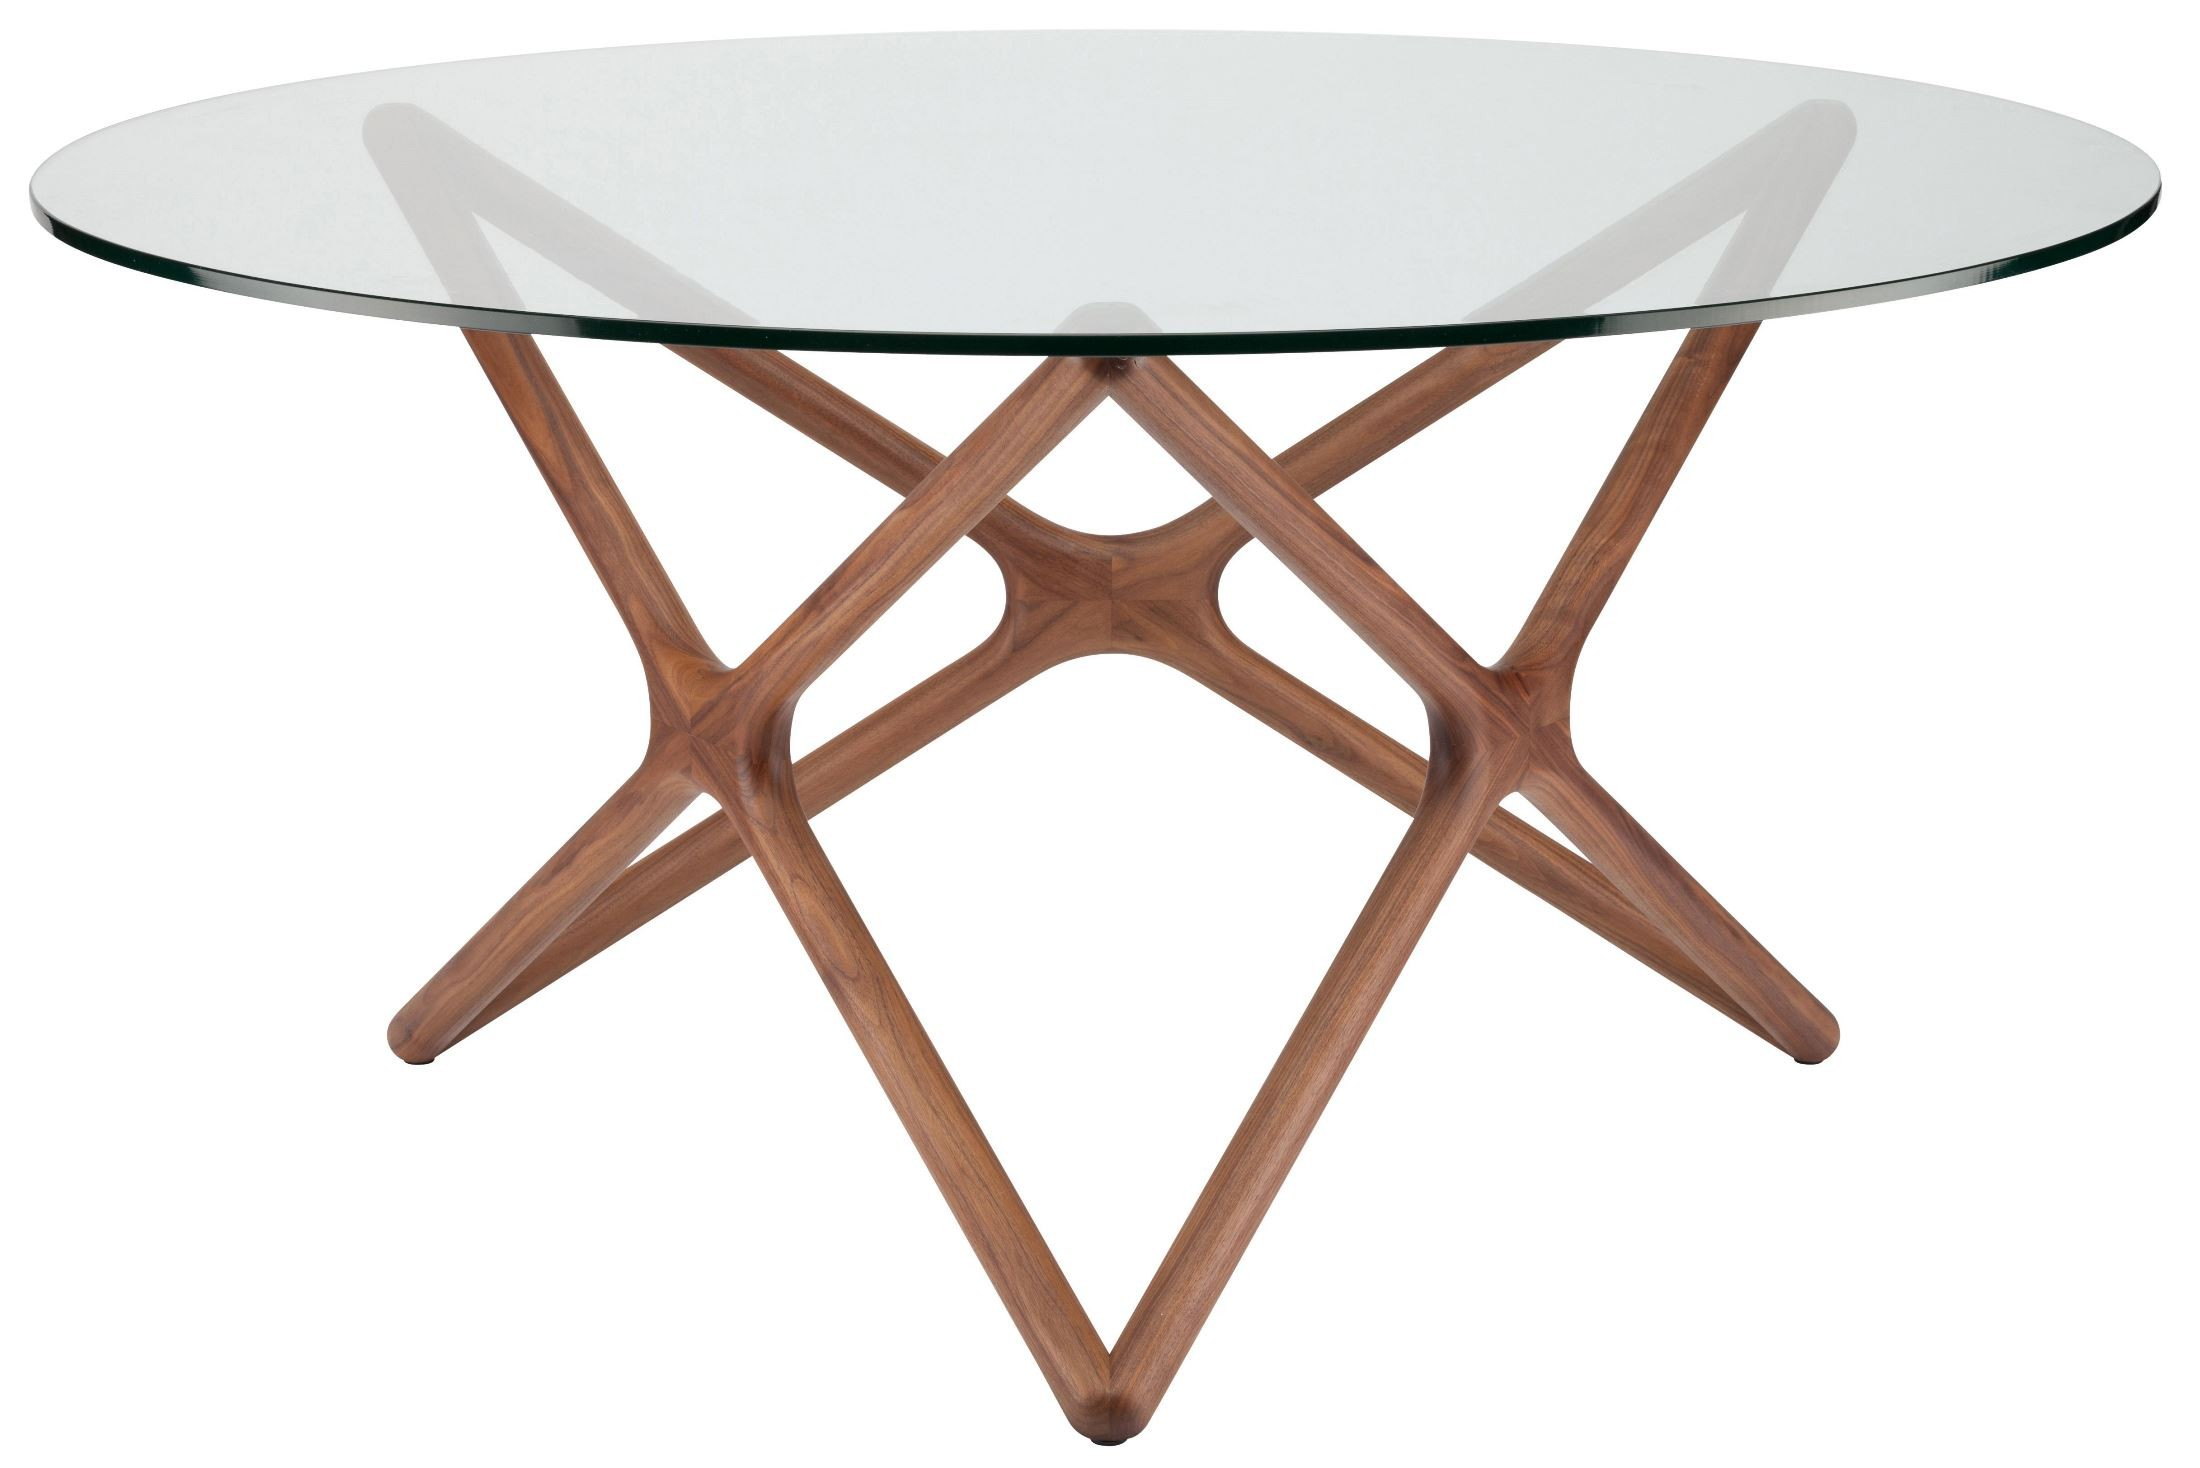 Star clear glass dining table hgem707 nuevo for Glass and wood dining table